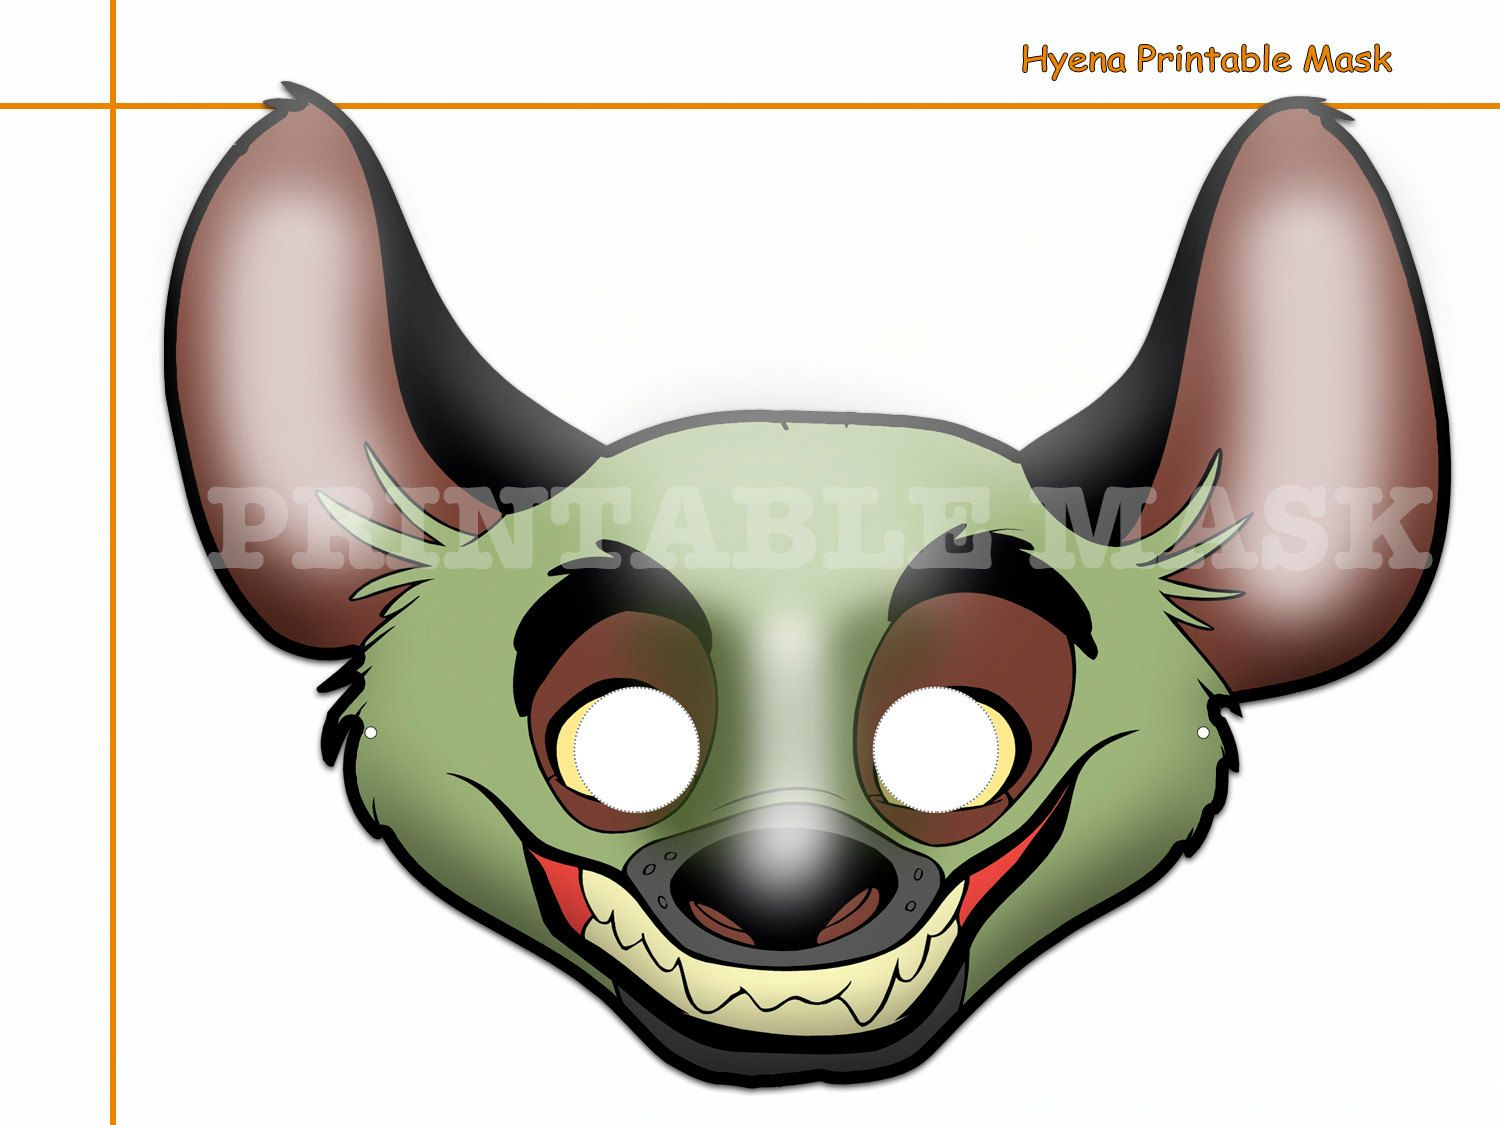 Unique Hyena Printable Mask, costumes, party, booth props, kids ...